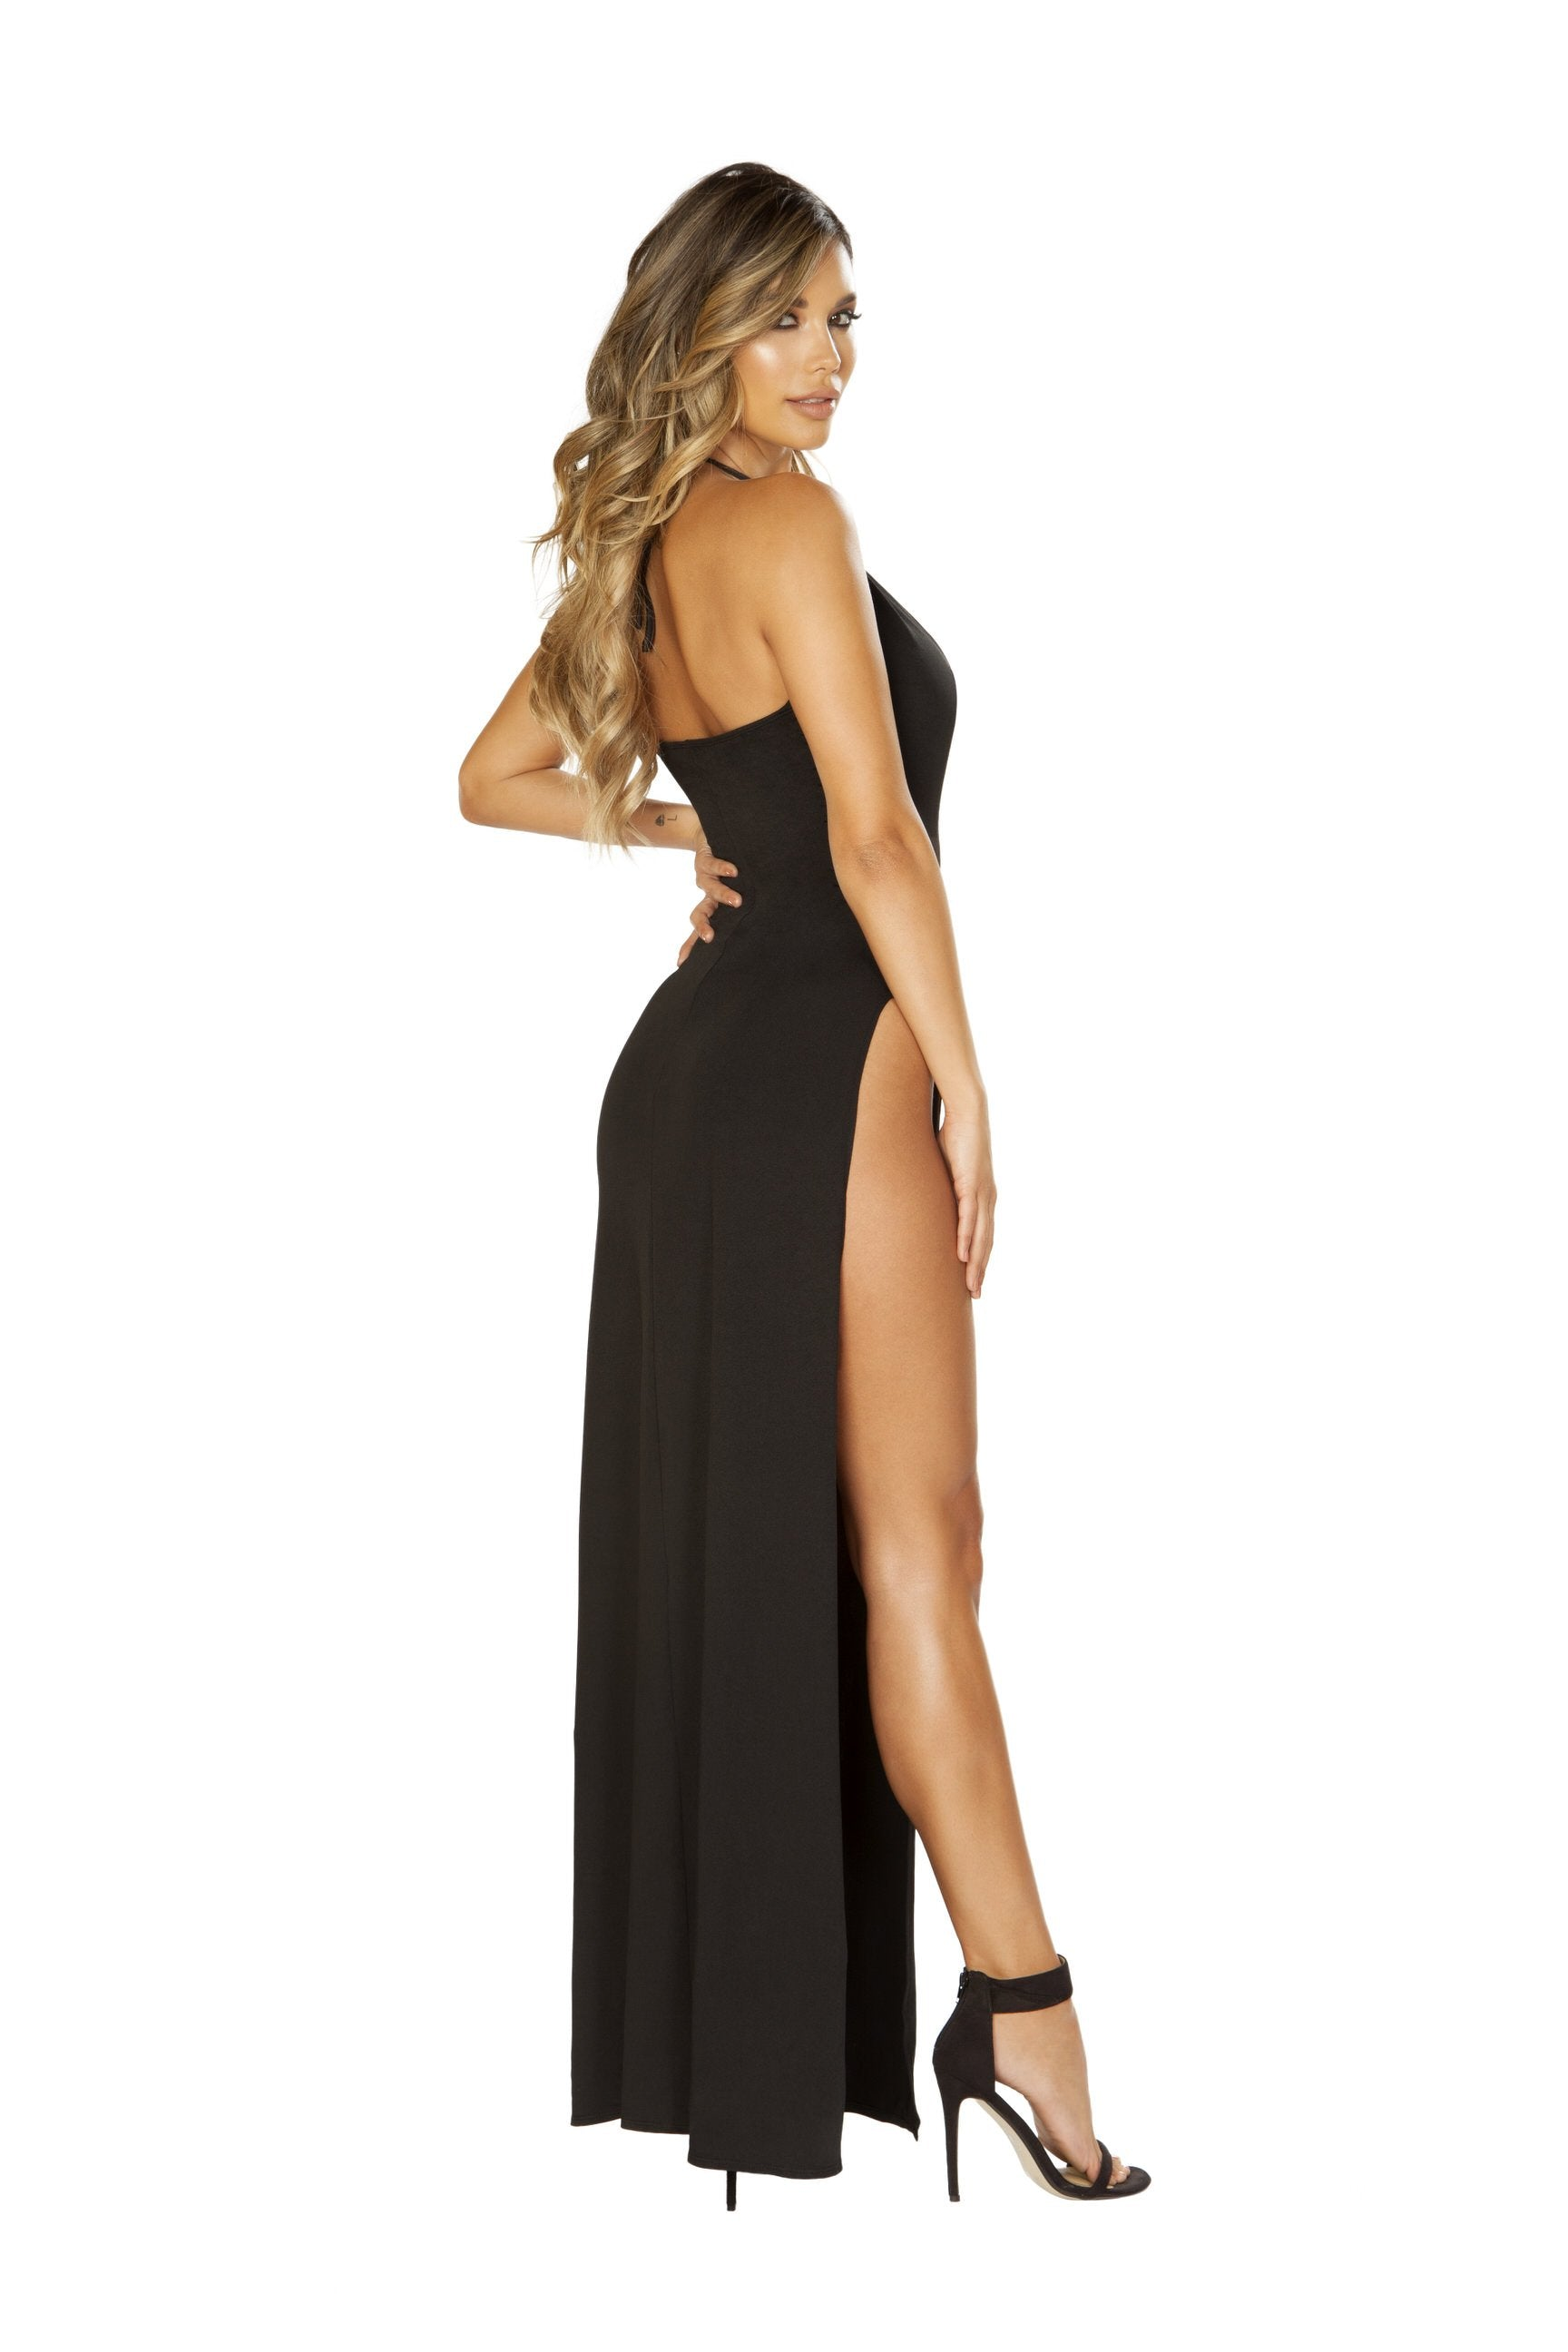 3647 - Maxi Length Dress with Deep V Detail & High Slit